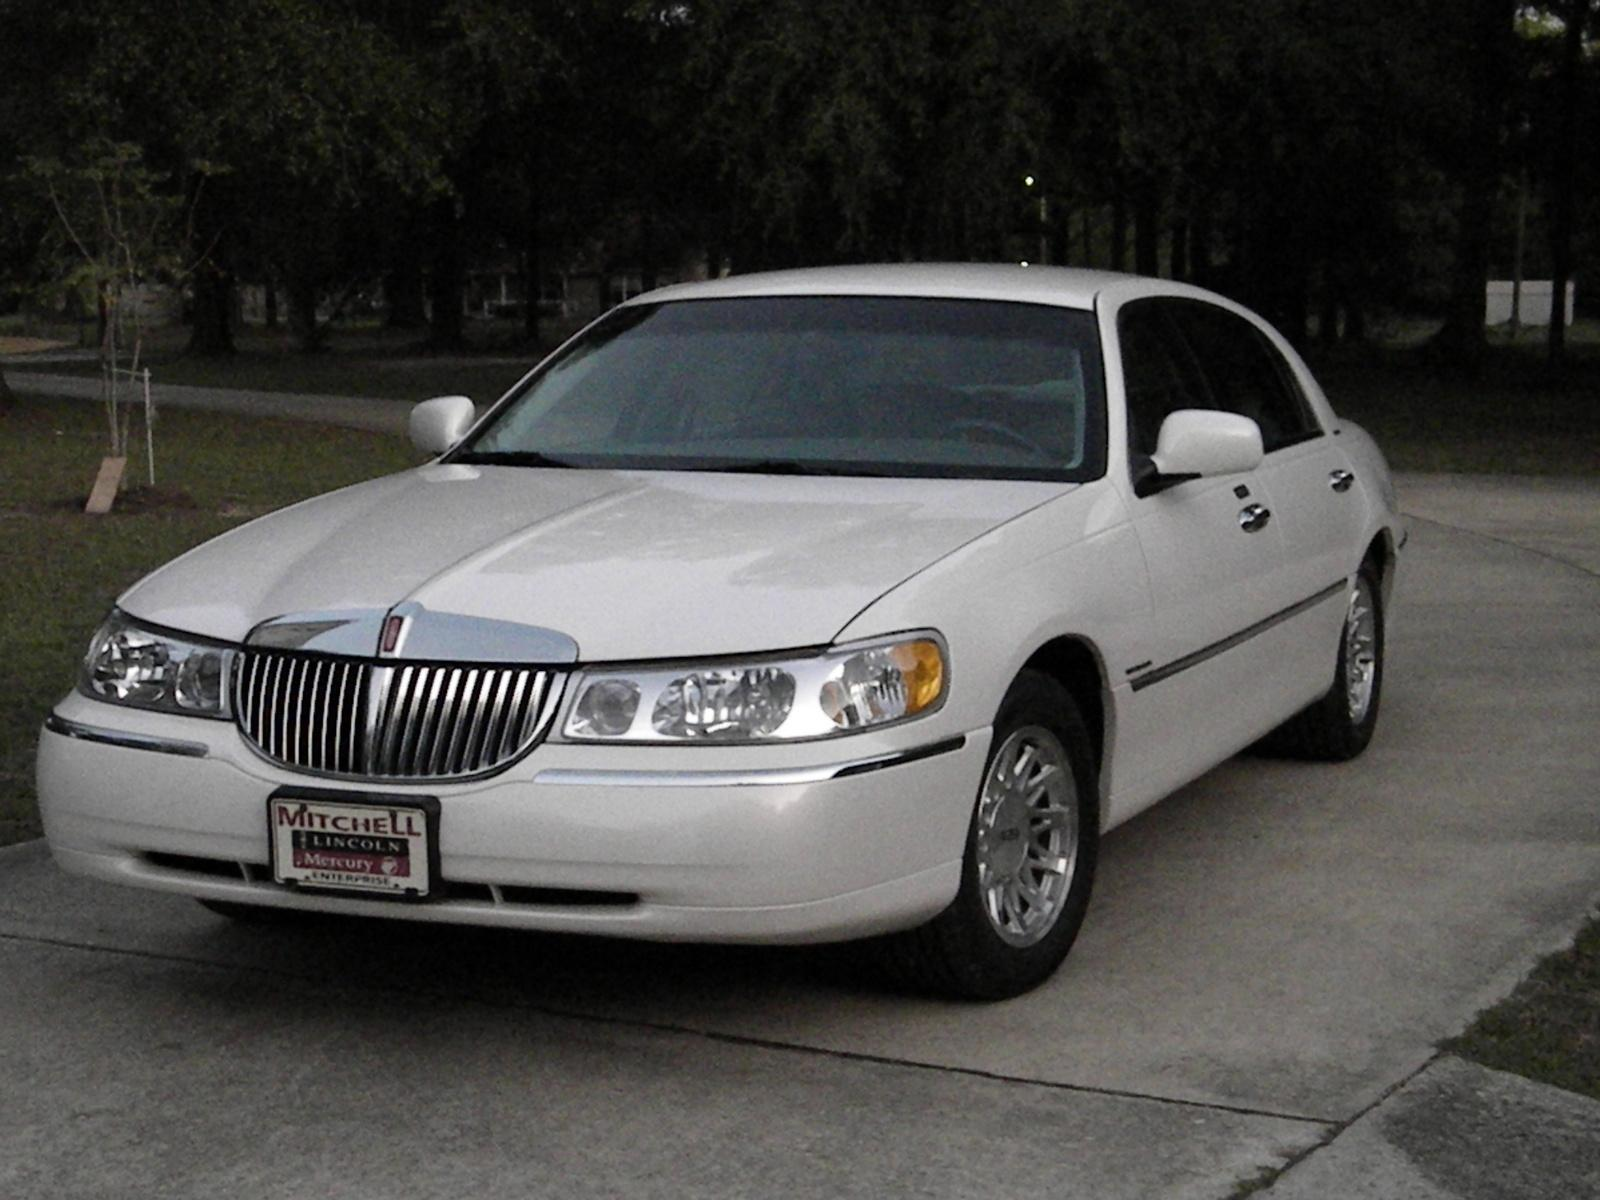 1999 lincoln town car information and photos zombiedrive. Black Bedroom Furniture Sets. Home Design Ideas